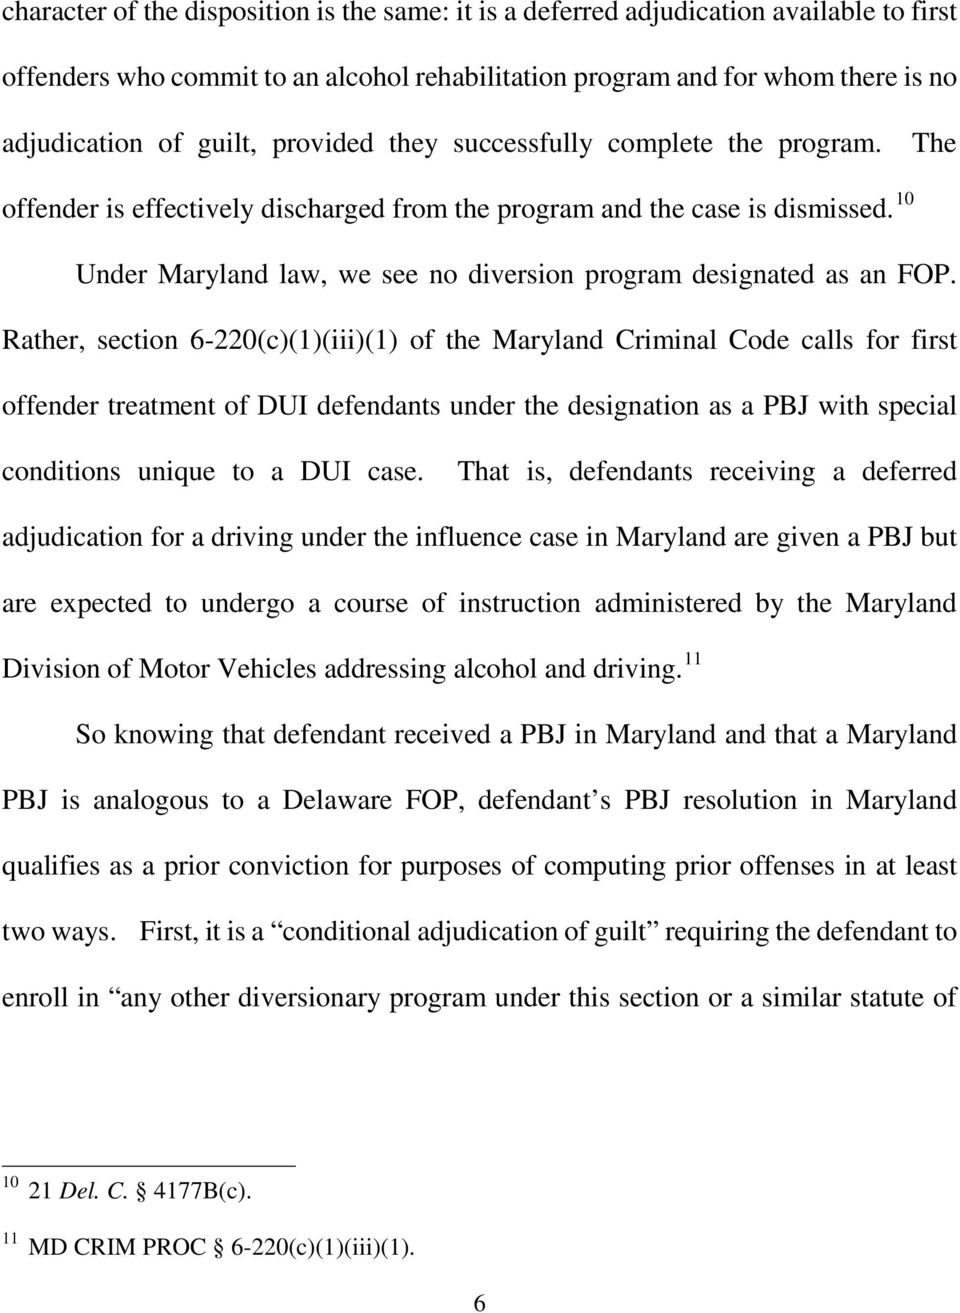 10 Under Maryland law, we see no diversion program designated as an FOP.